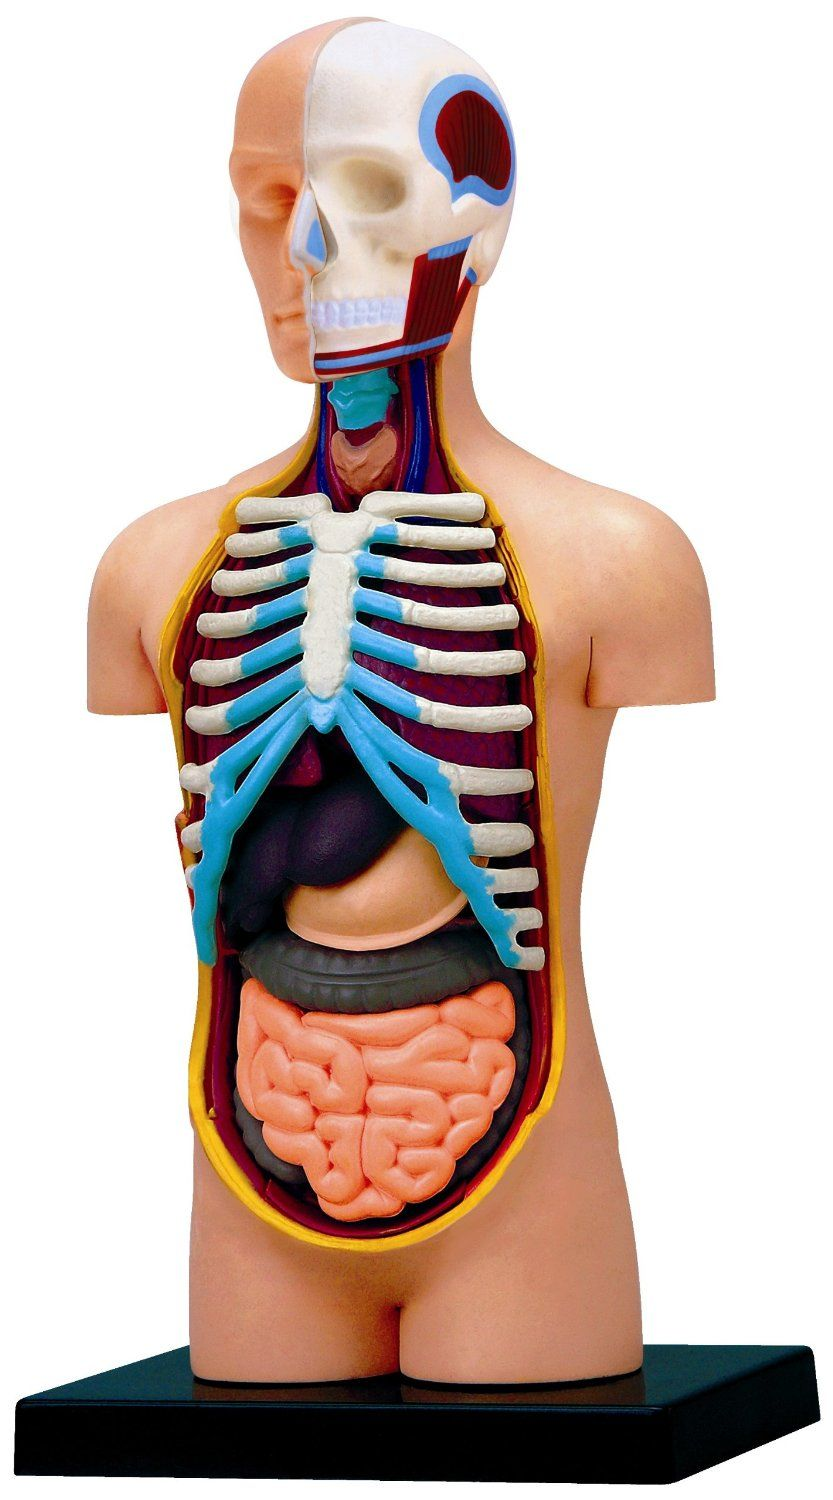 Charmant Masters In Anatomy And Physiology Ideen - Menschliche ...